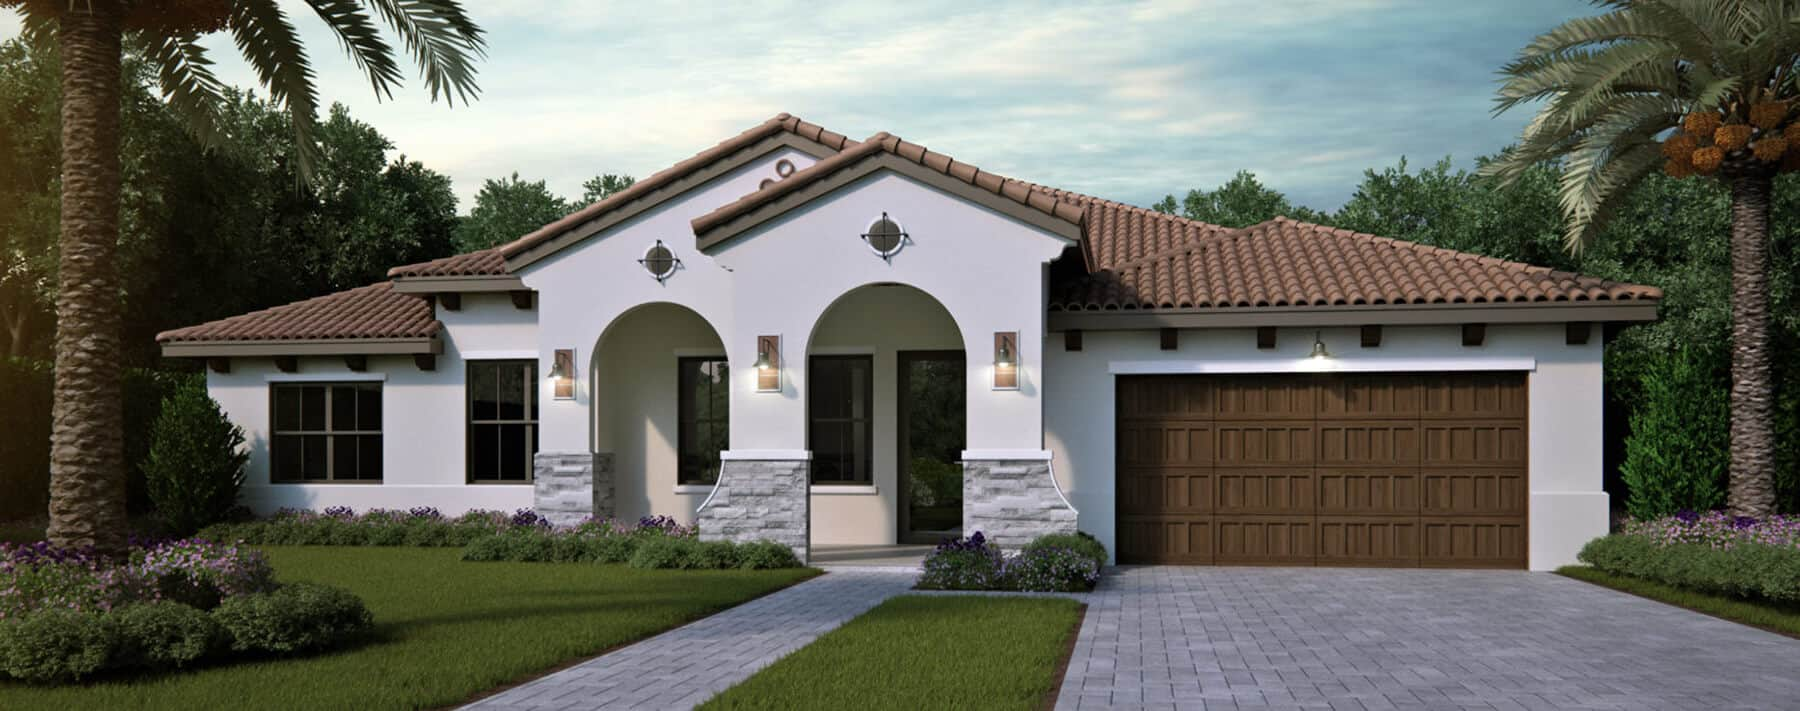 Palm Beach County, FL Homes for Sale | Arden